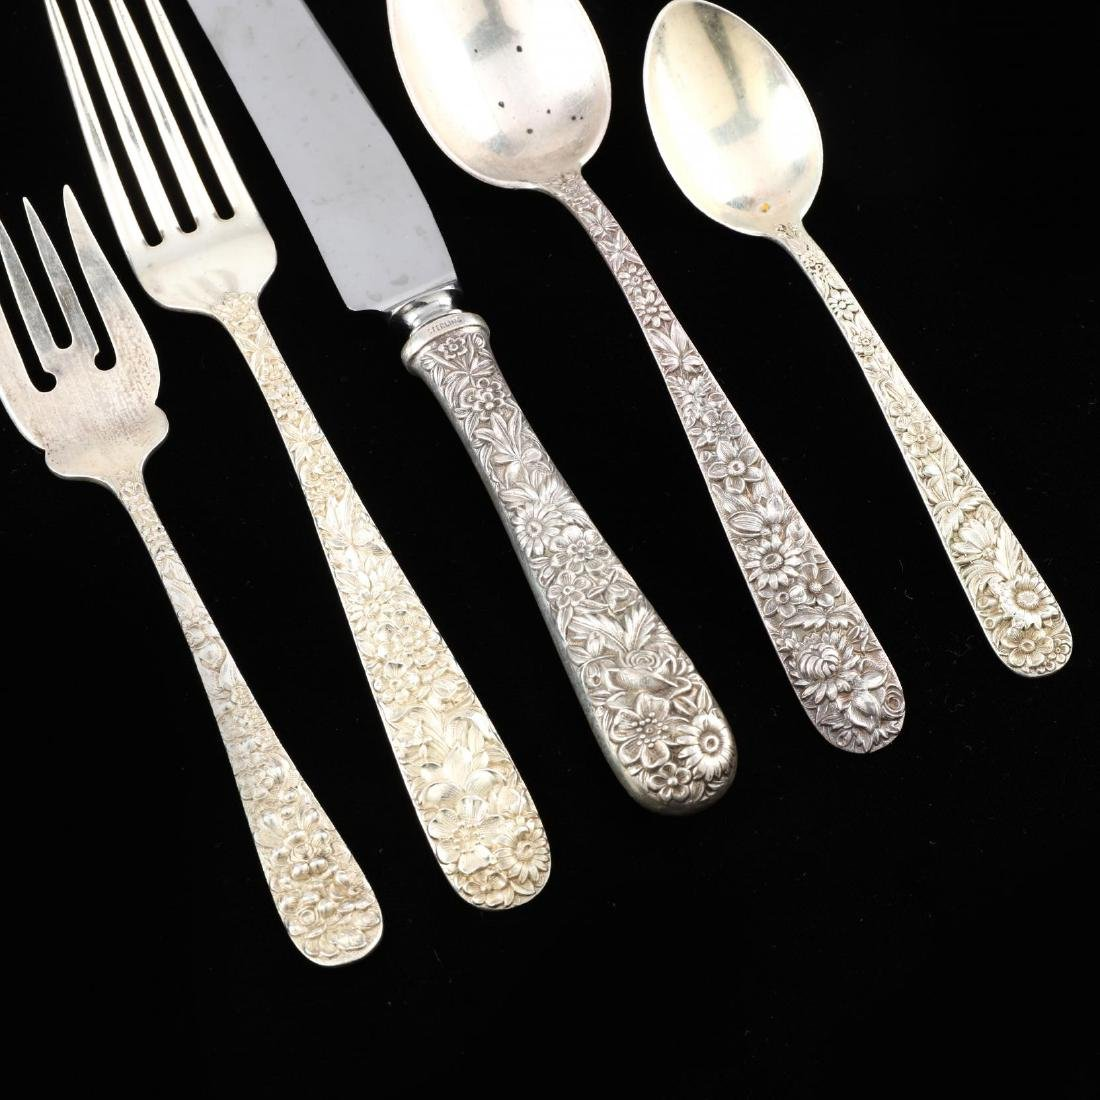 An Assembled Repoussé Sterling Silver Flatware Set - 2